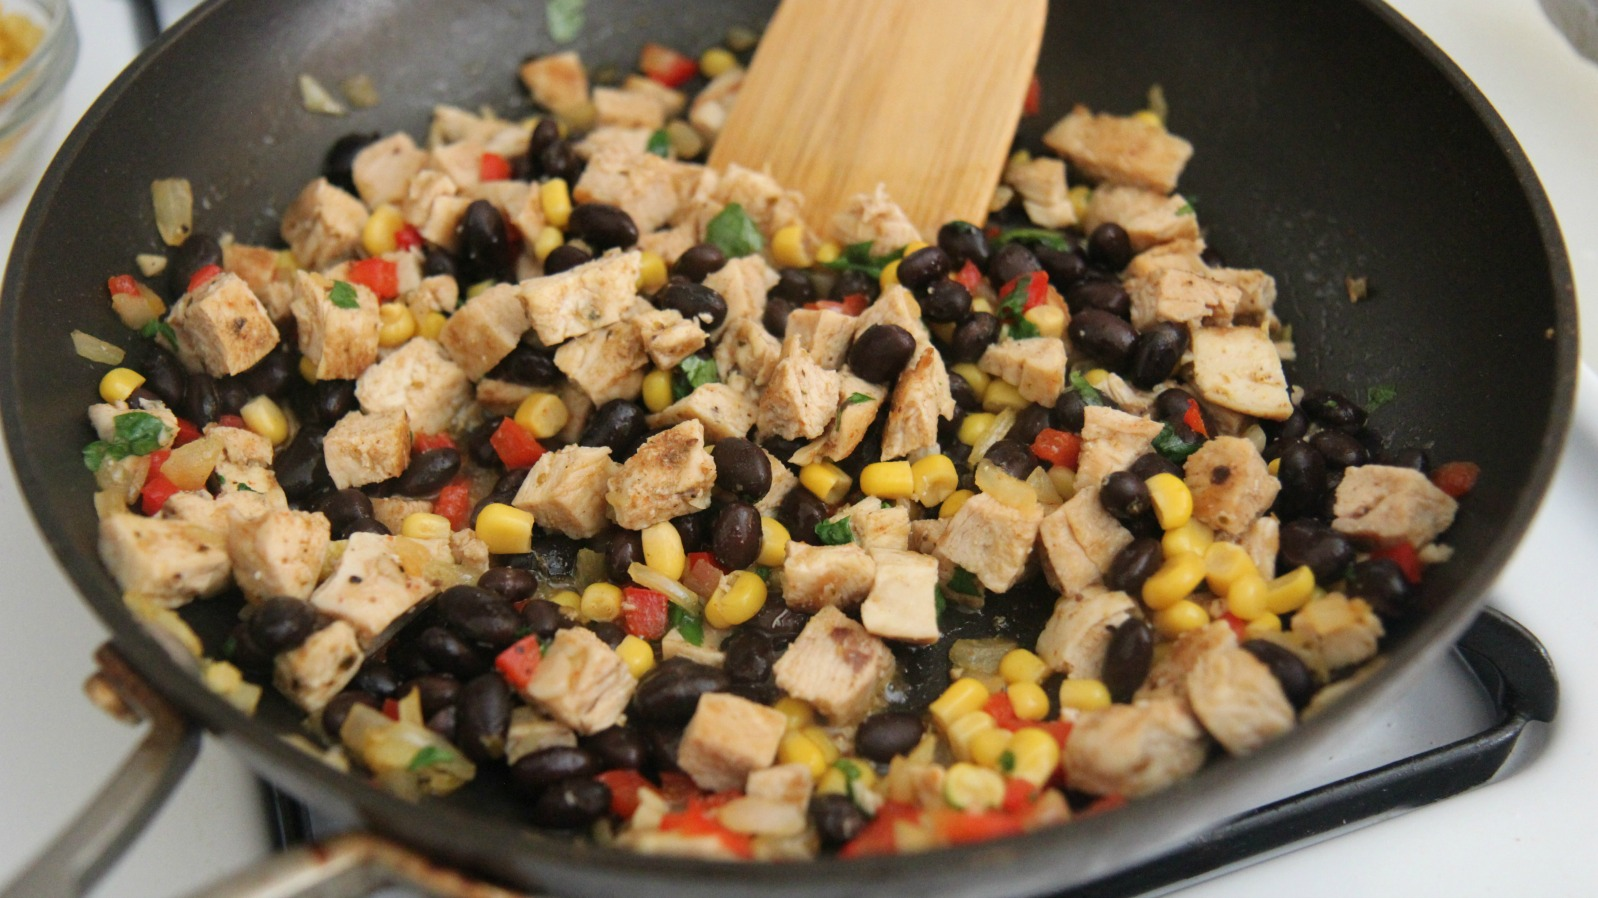 Mix the cubed chicken in with the beans, corn, pepper and more spices. Don't overcook or the chicken will become dry.